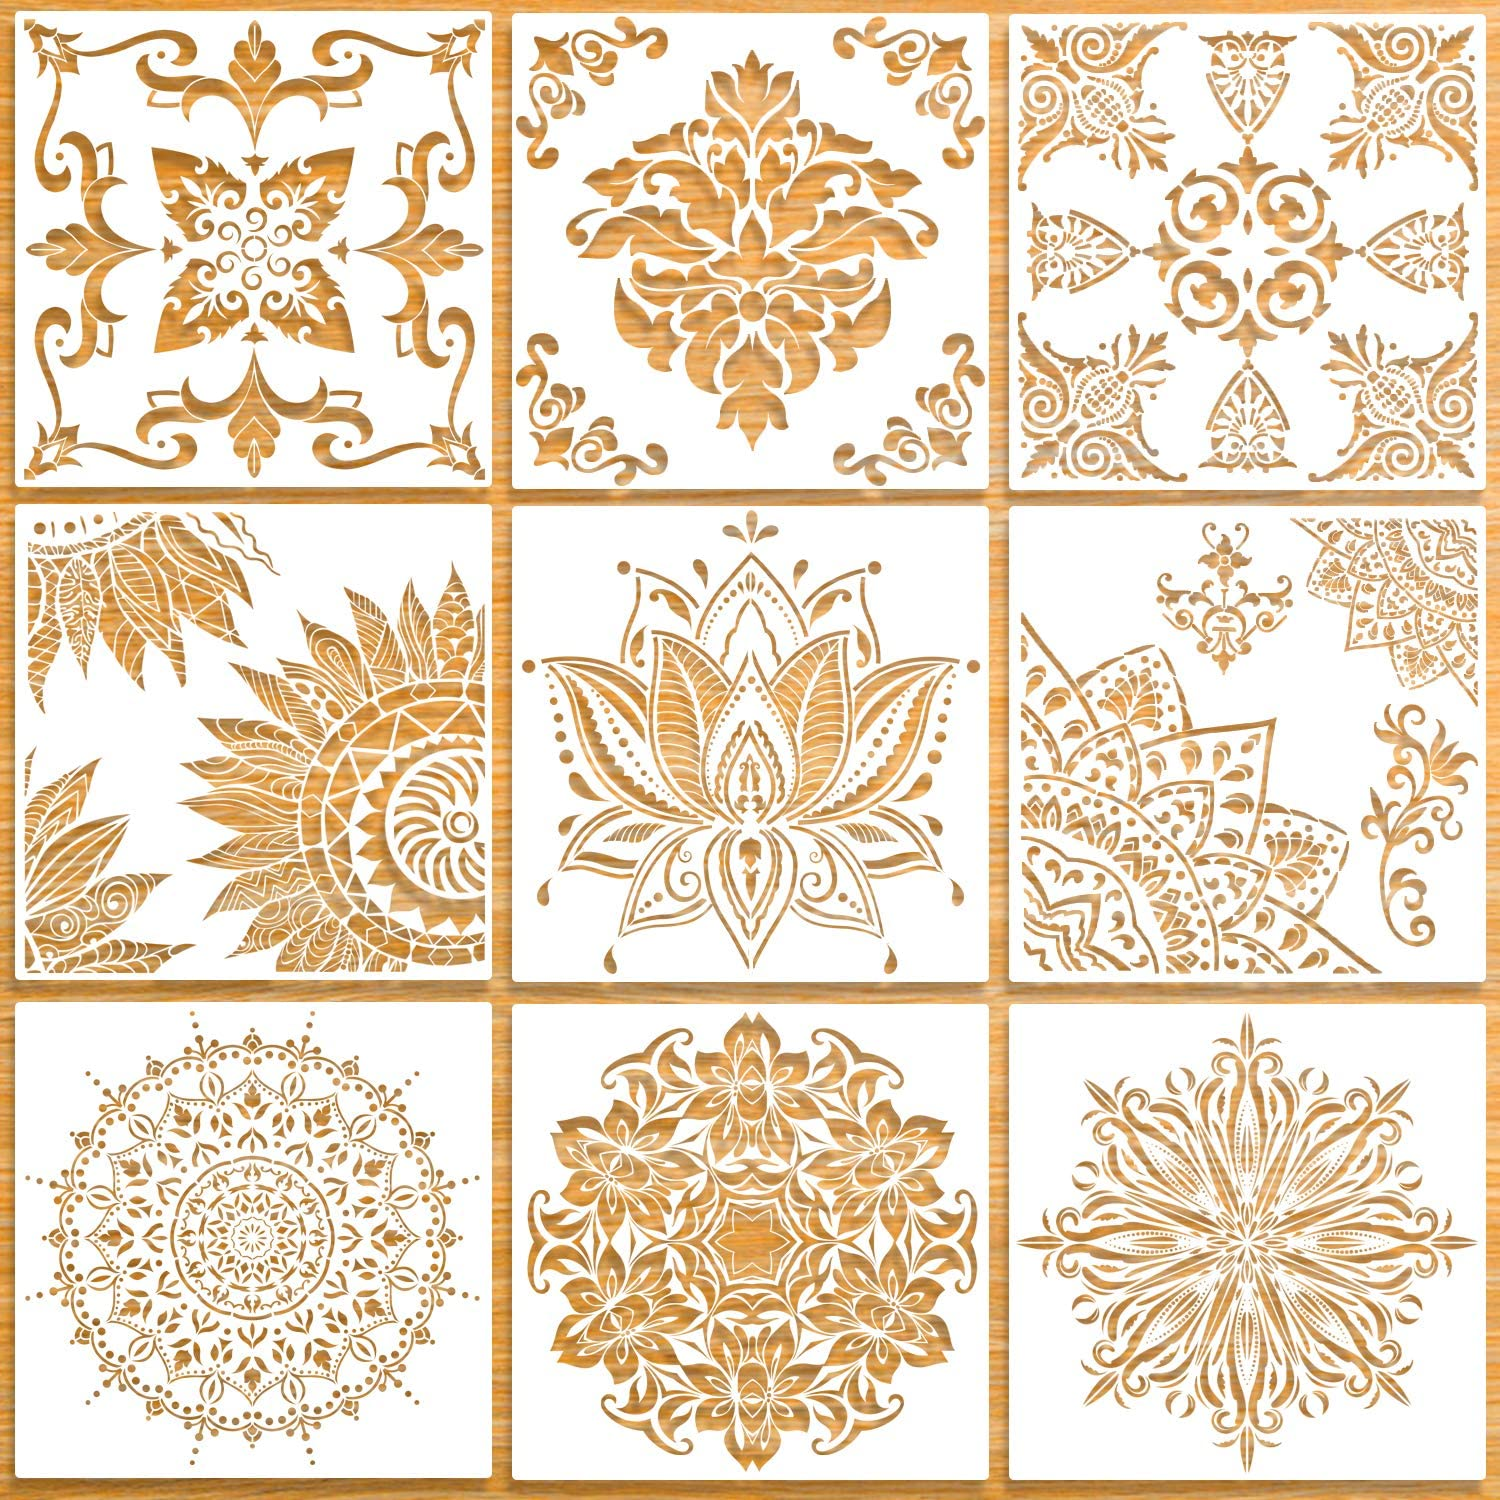 9 Pack (12x12 Inch) Large Reusable Stencil Mandala Stencil Laser Cut Painting Template for Floor Wall Tile Fabric Furniture Stencils Painting